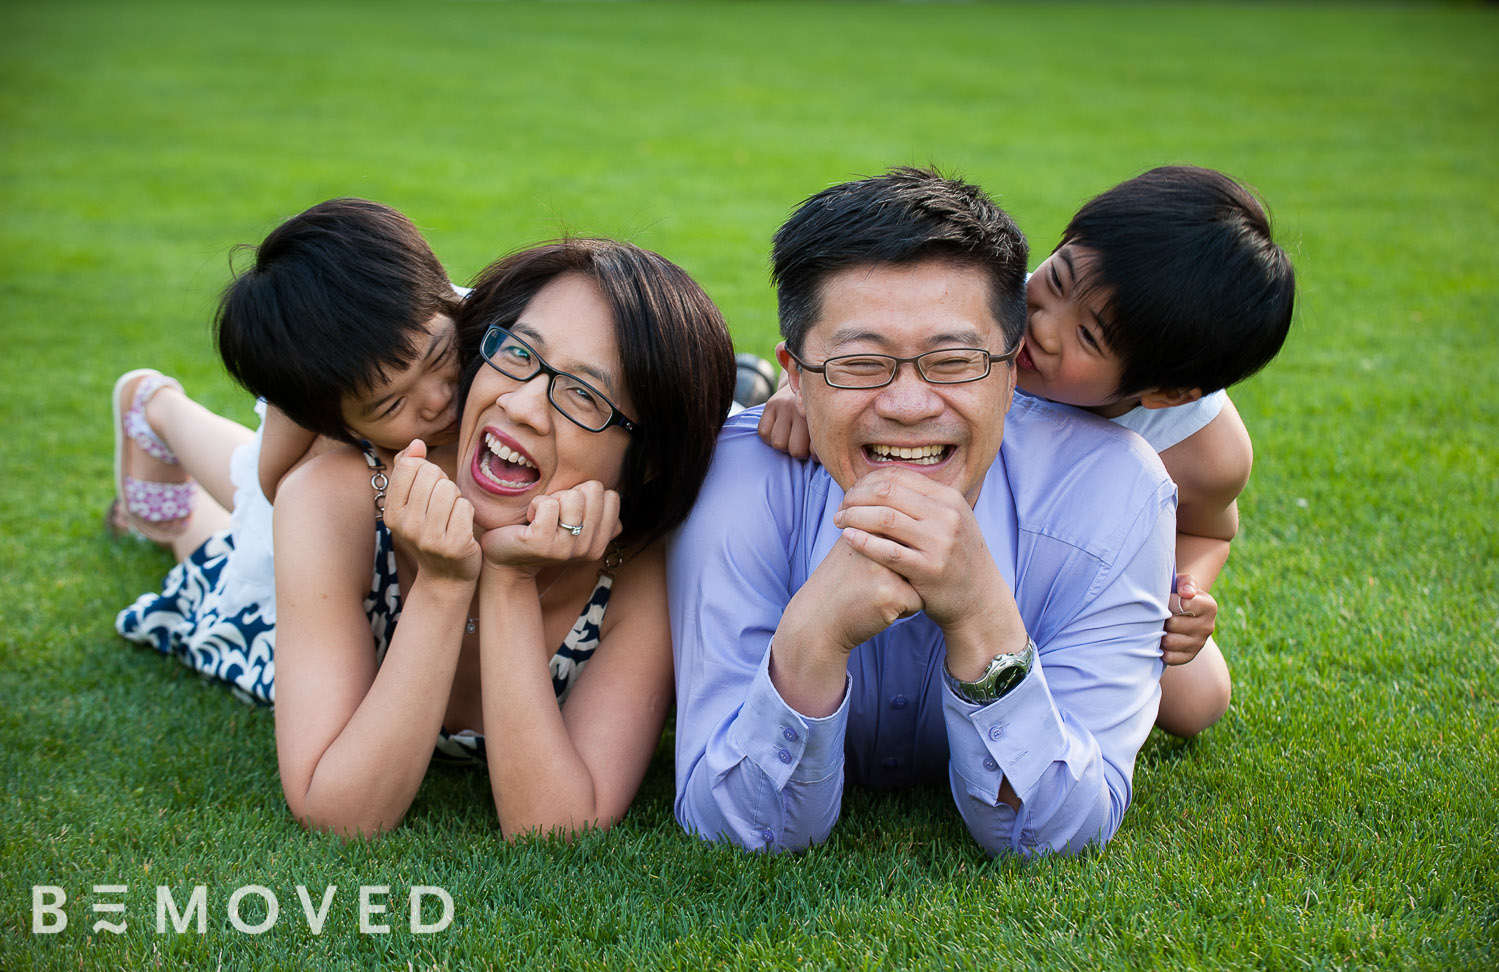 003_stanley-park-family-photography.jpg